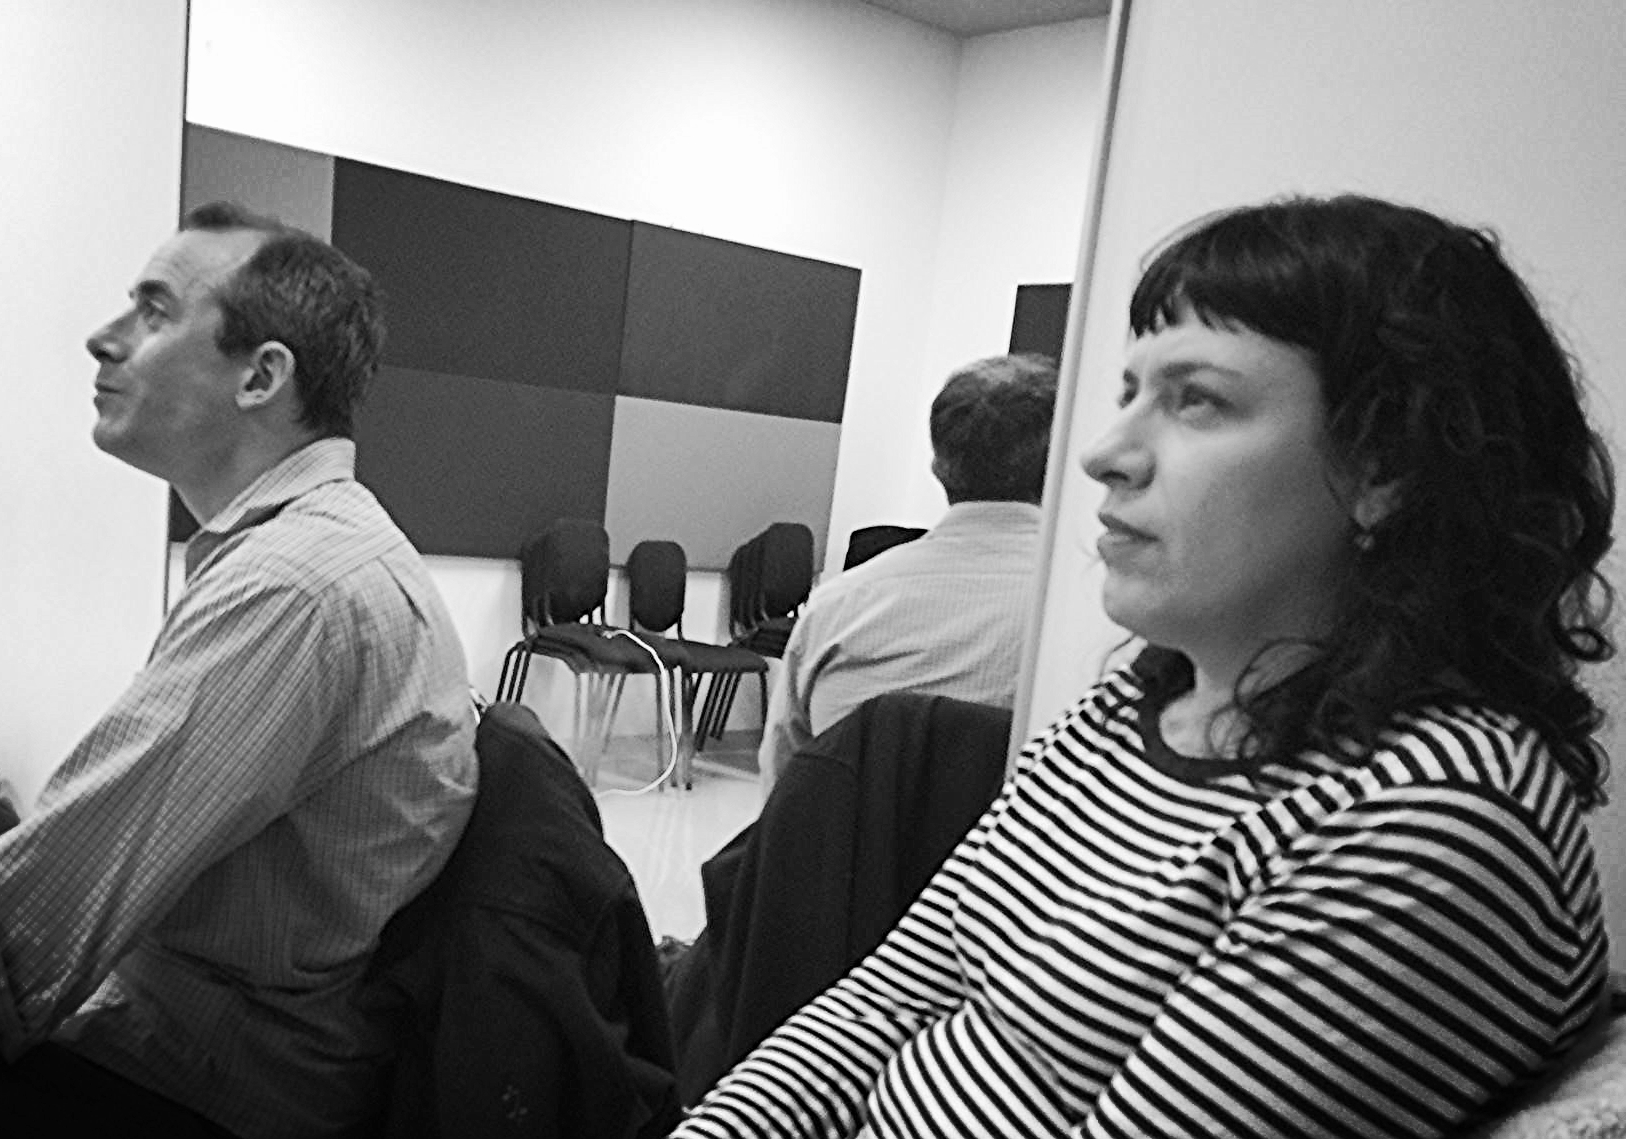 Stefan Schick and Deb Rabbai in the rehearsal room.